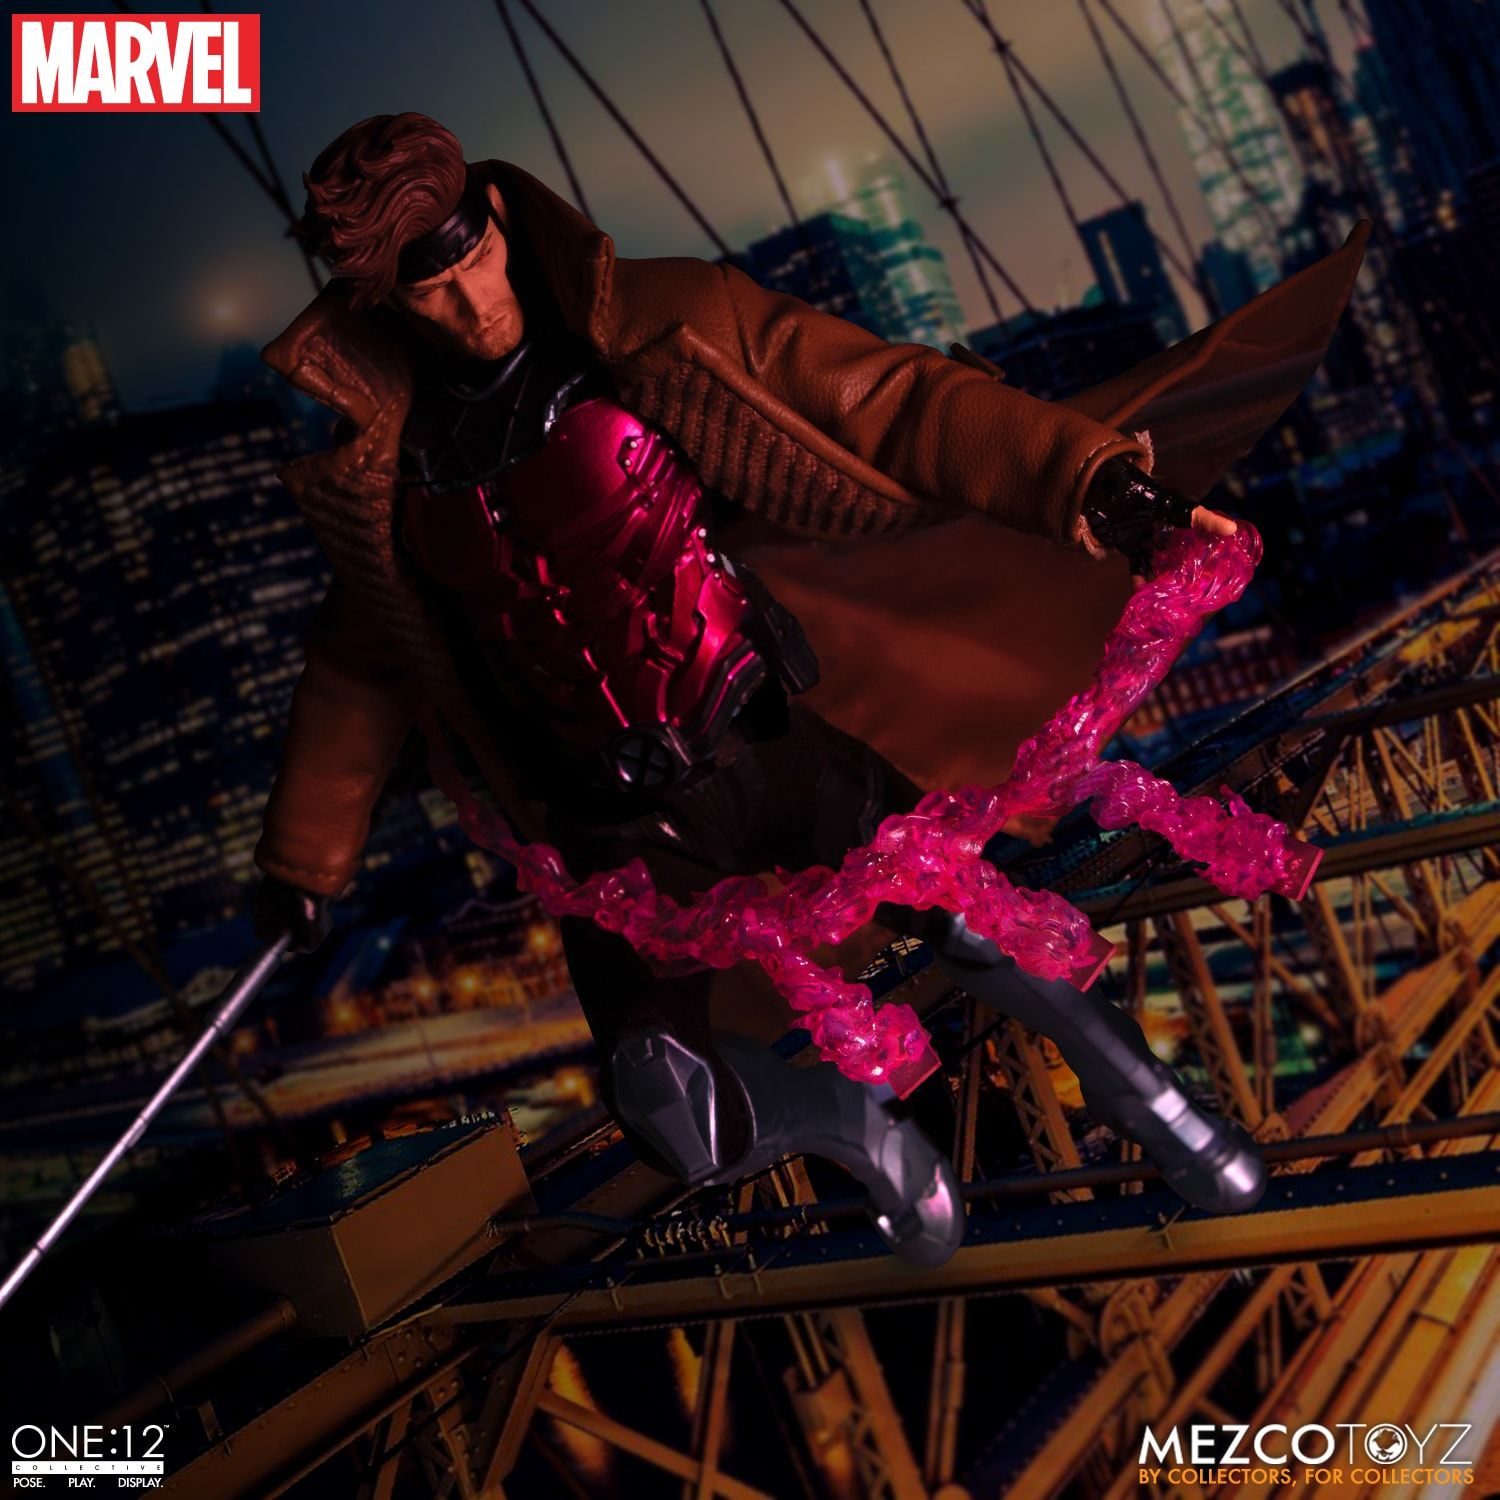 Mezco - One:12 Collcective - Marvel's X-Men - Gambit